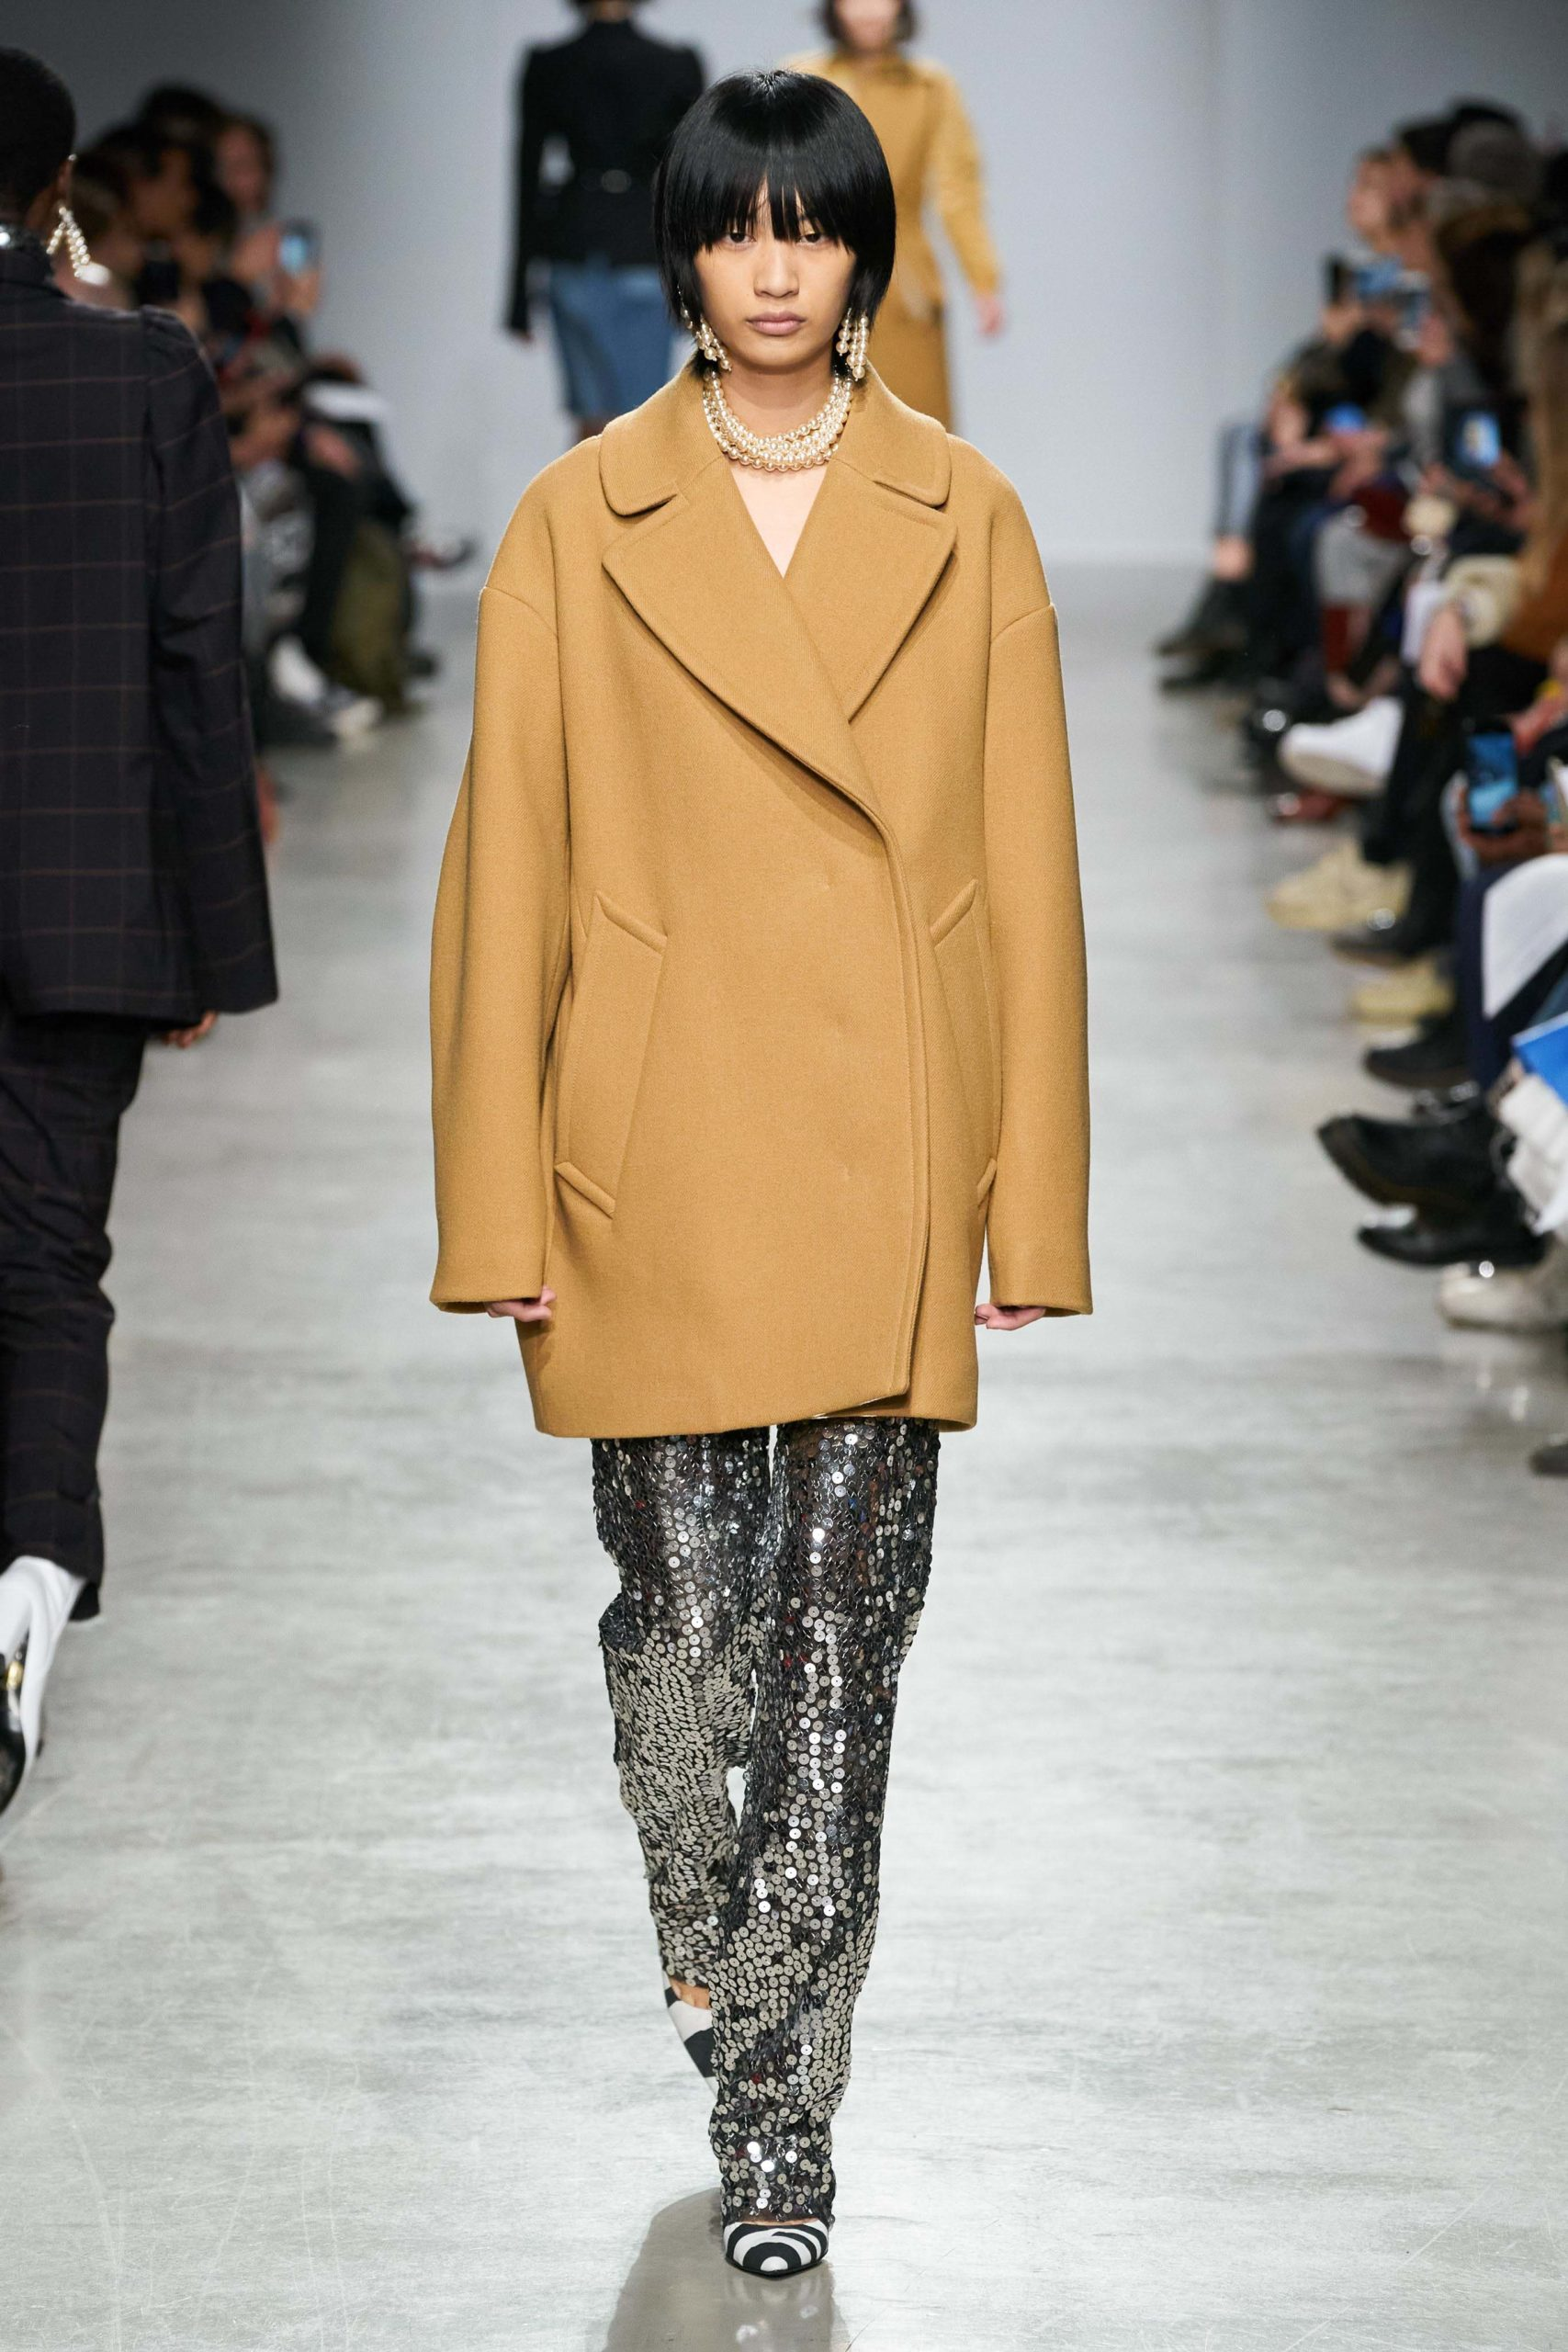 Lutz Huelle Fall 2020 trends runway coverage Ready To Wear Vogue minimal silver_